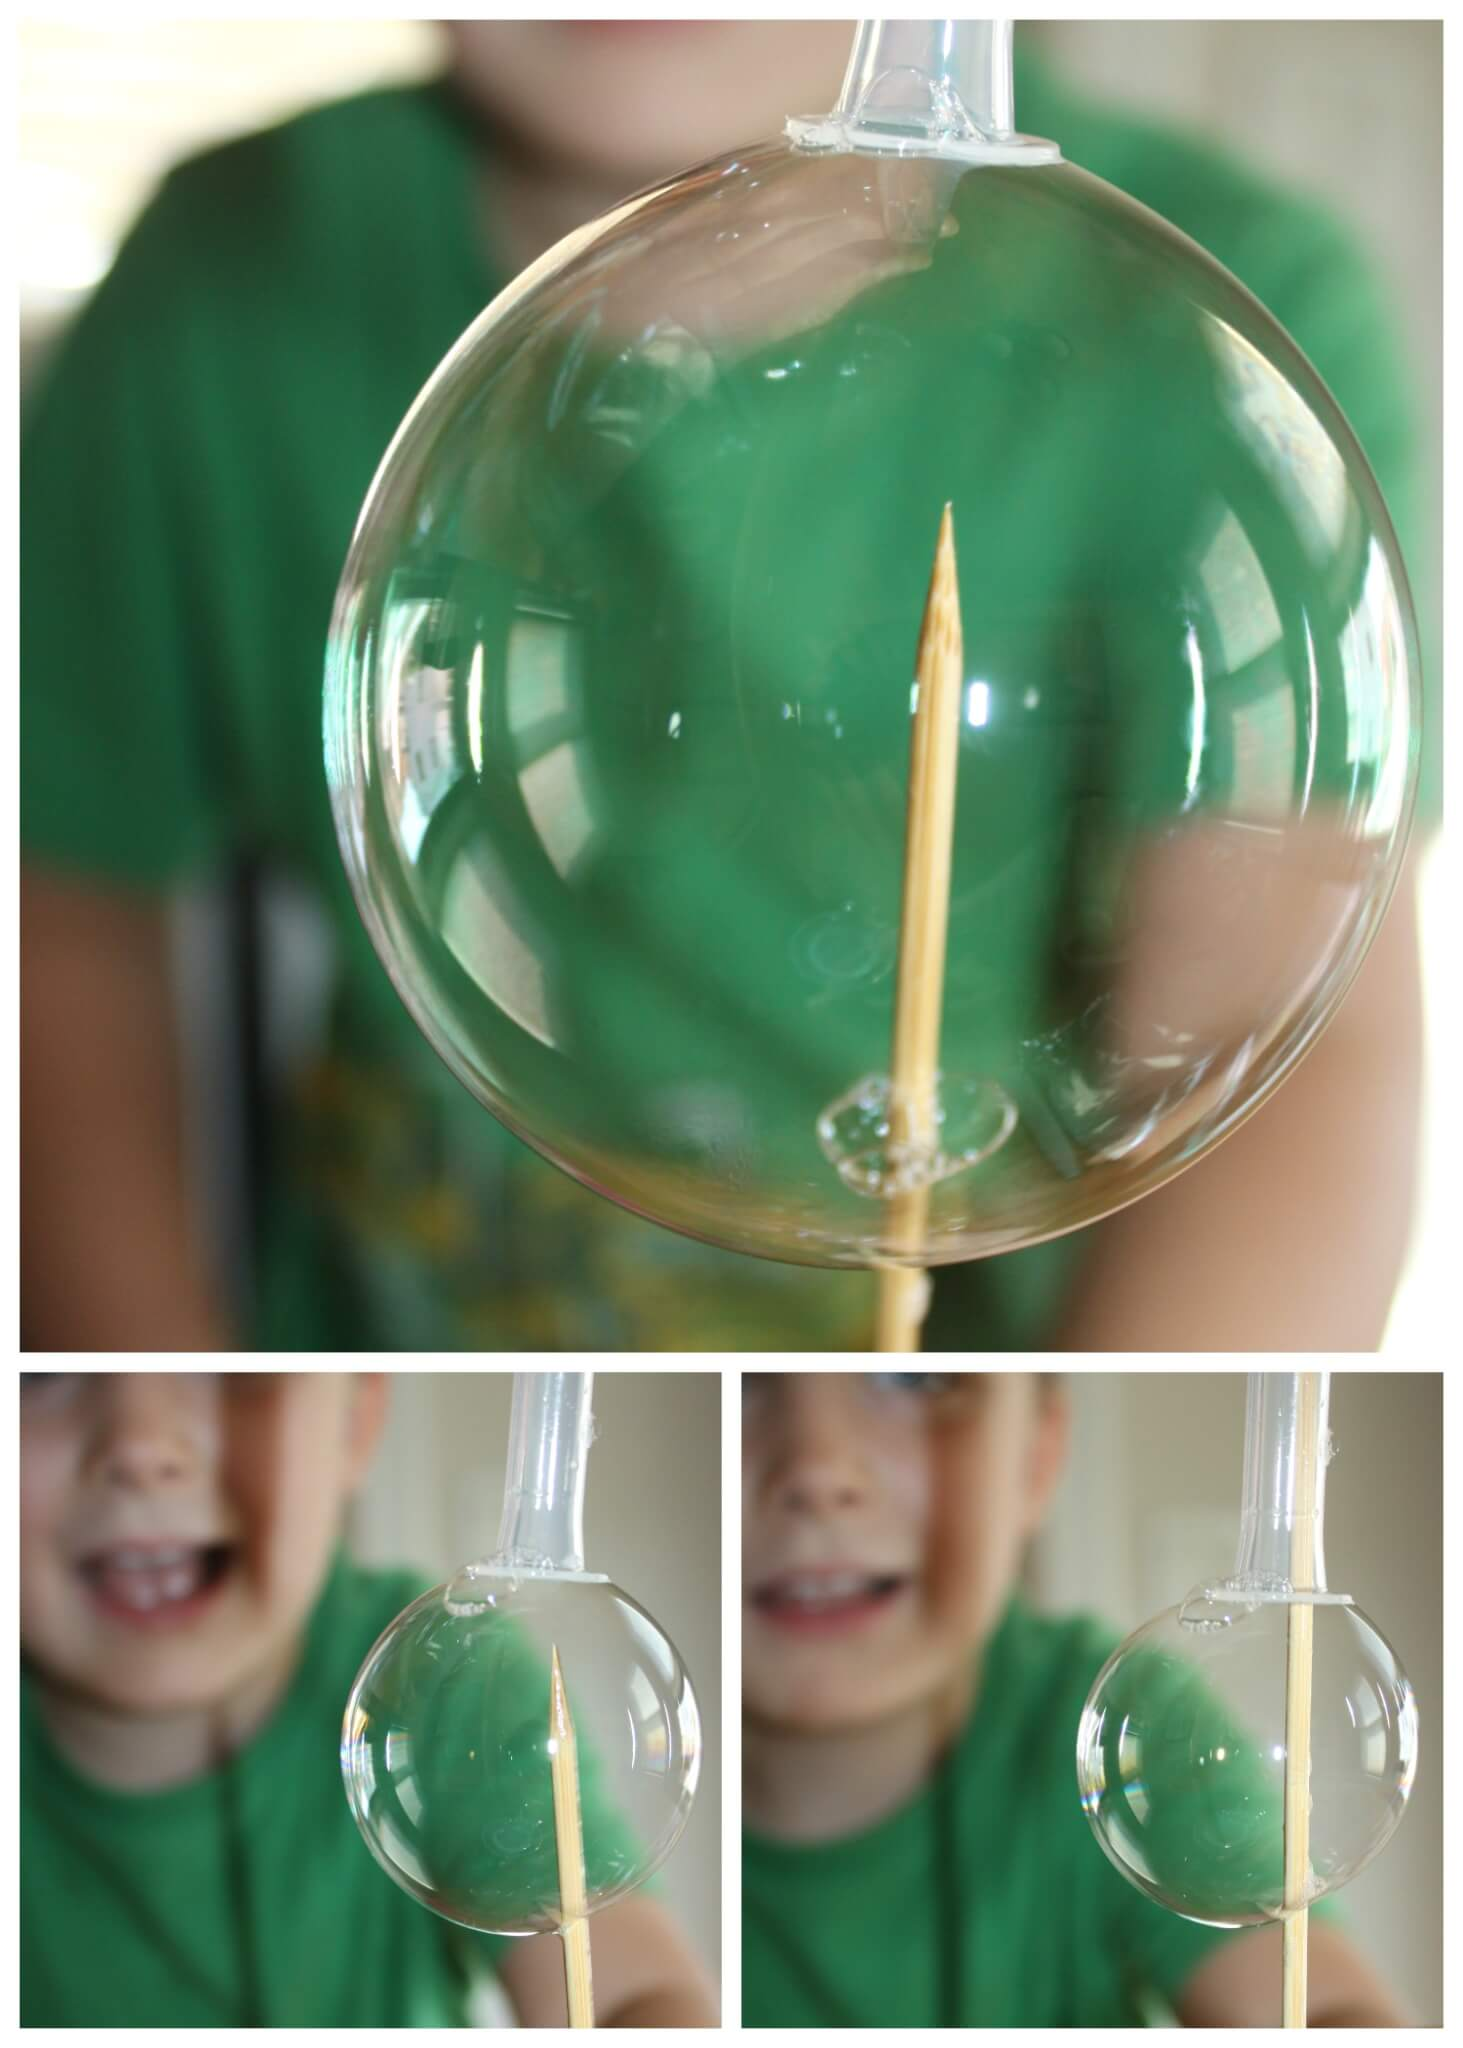 What Is Rubber Made Of >> Bubble Science for Halloween with Ghostly Bubbles Activity